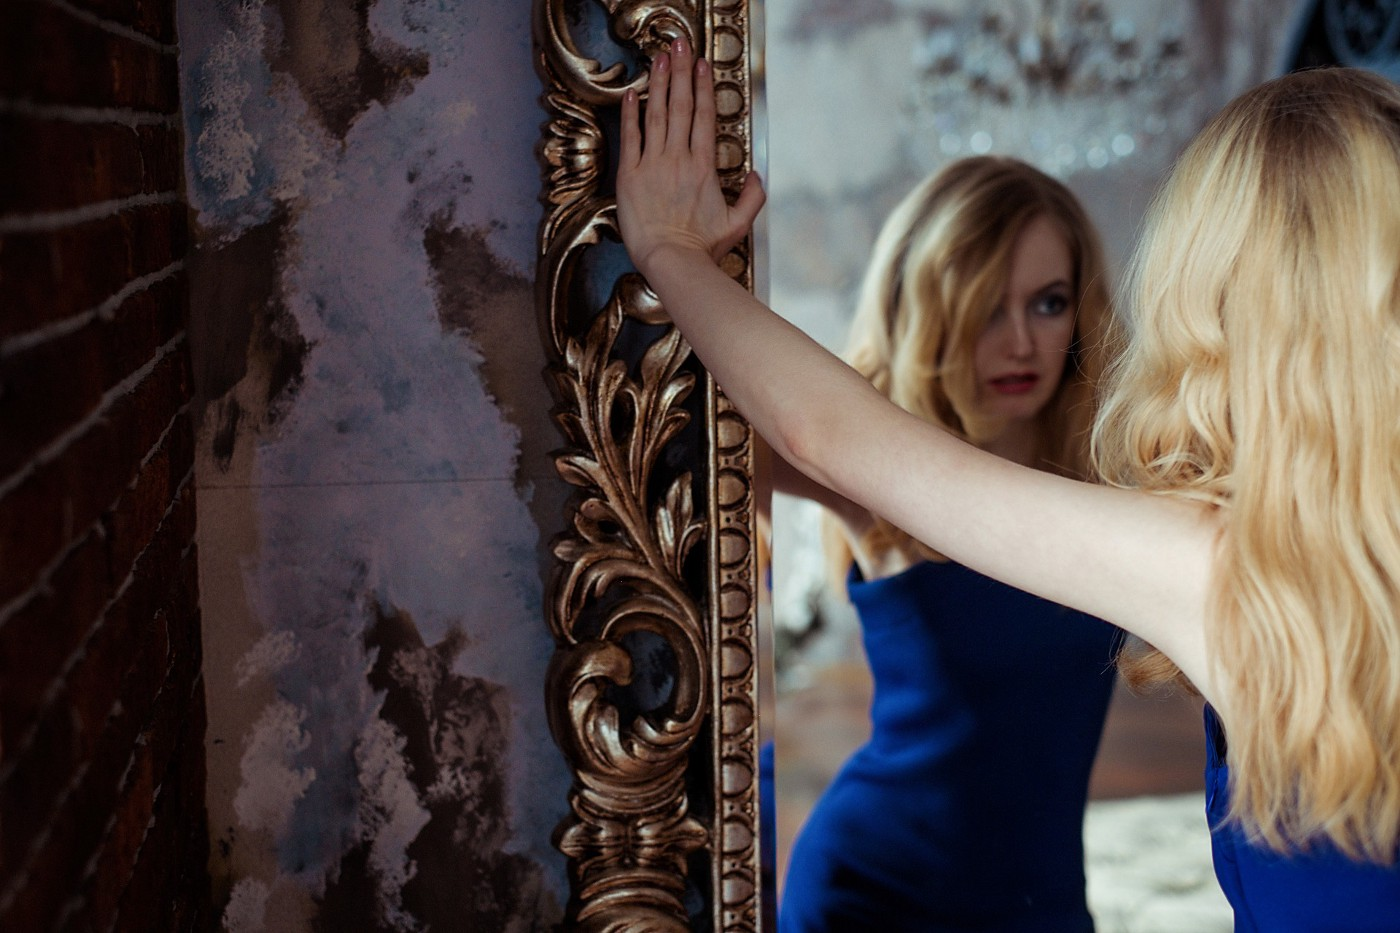 A woman admires herself in a mirror. She has blonde hair and wears a blue dress